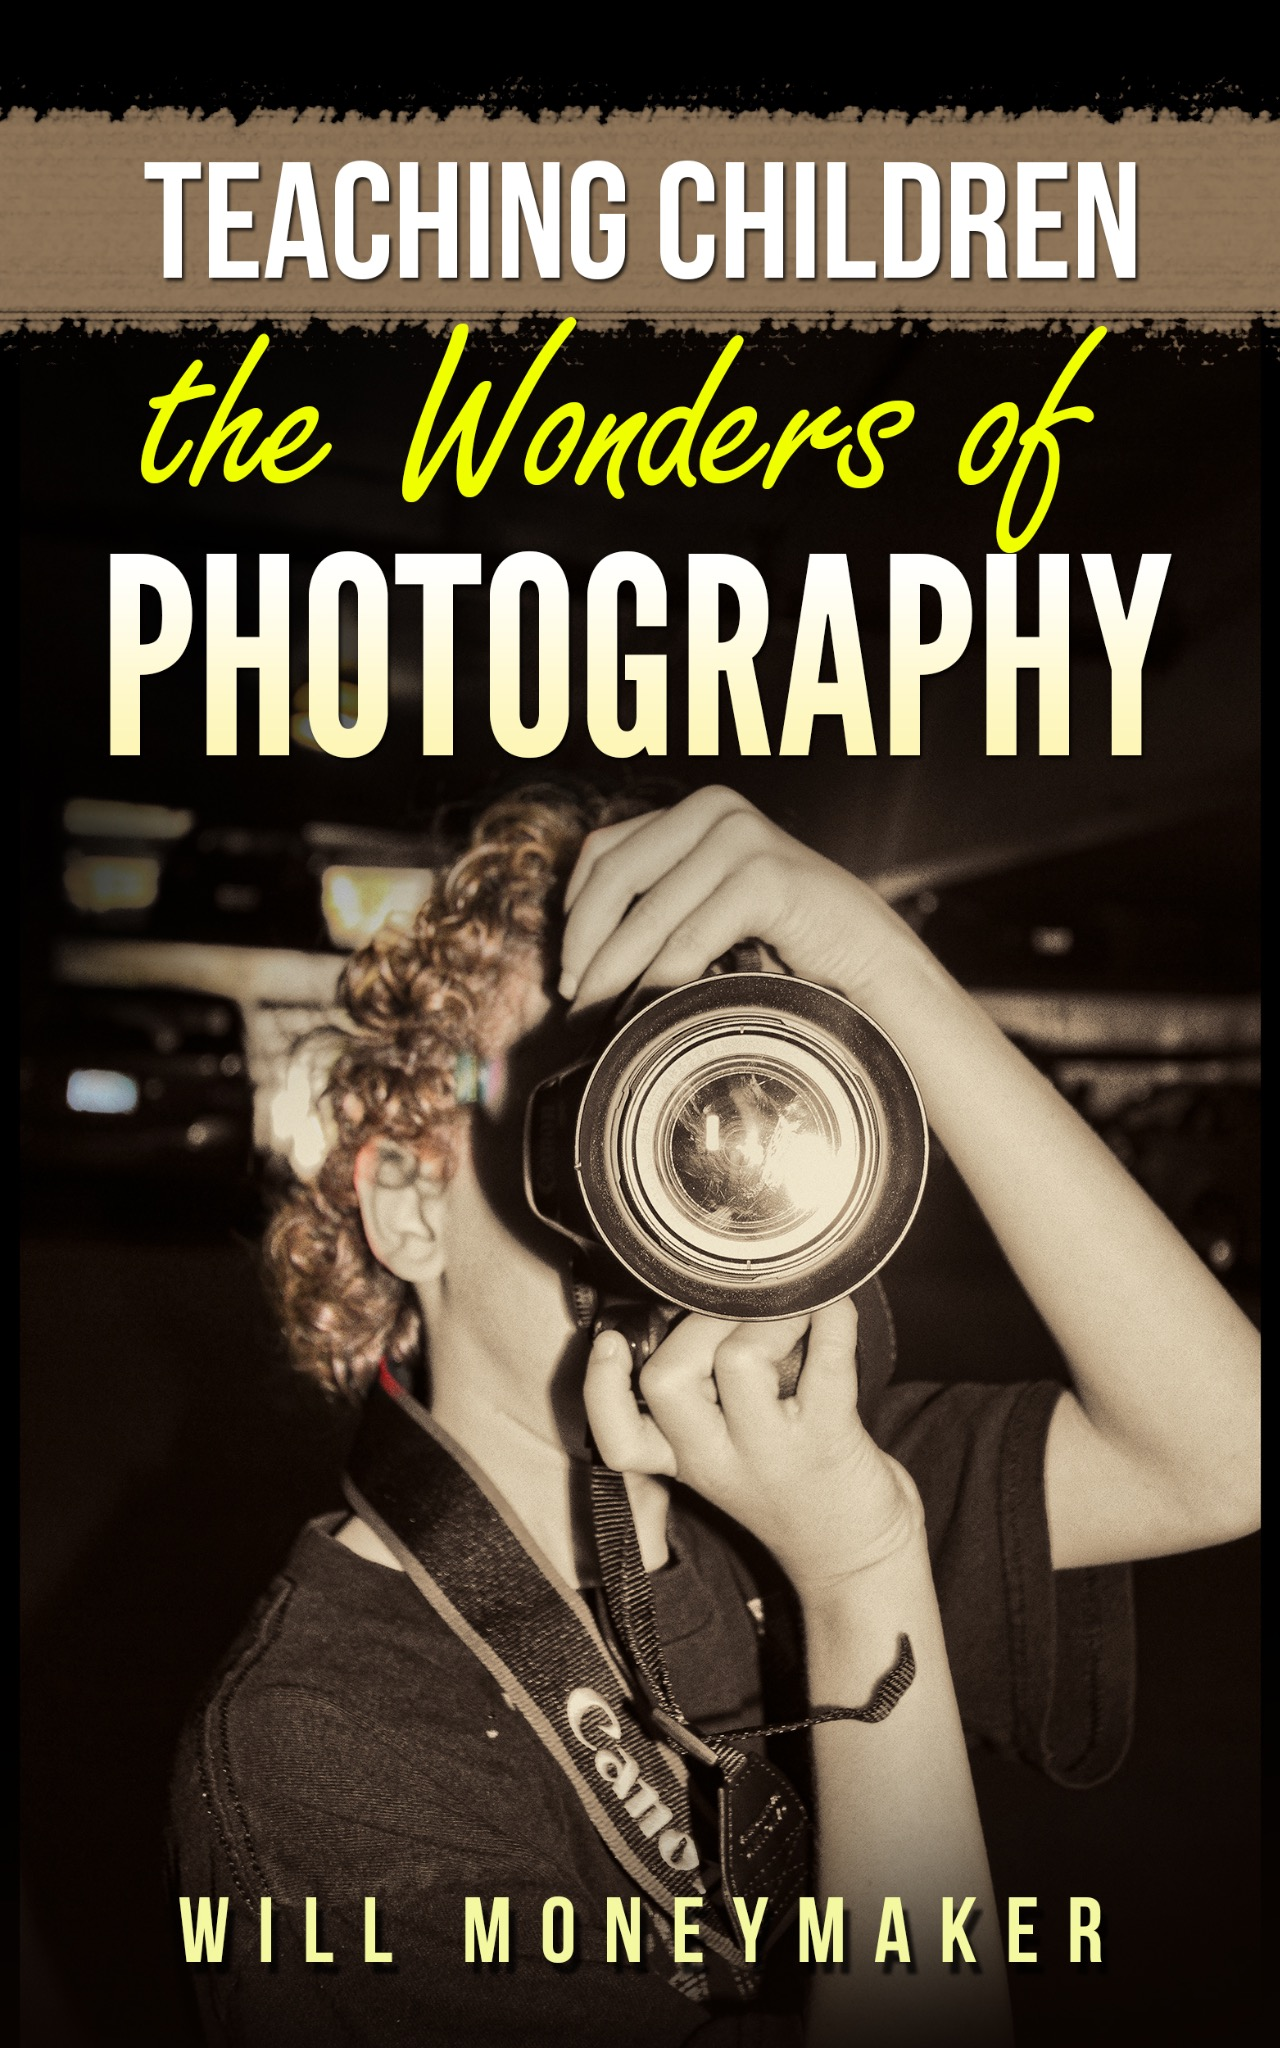 Teaching Children the Wonders of Photography